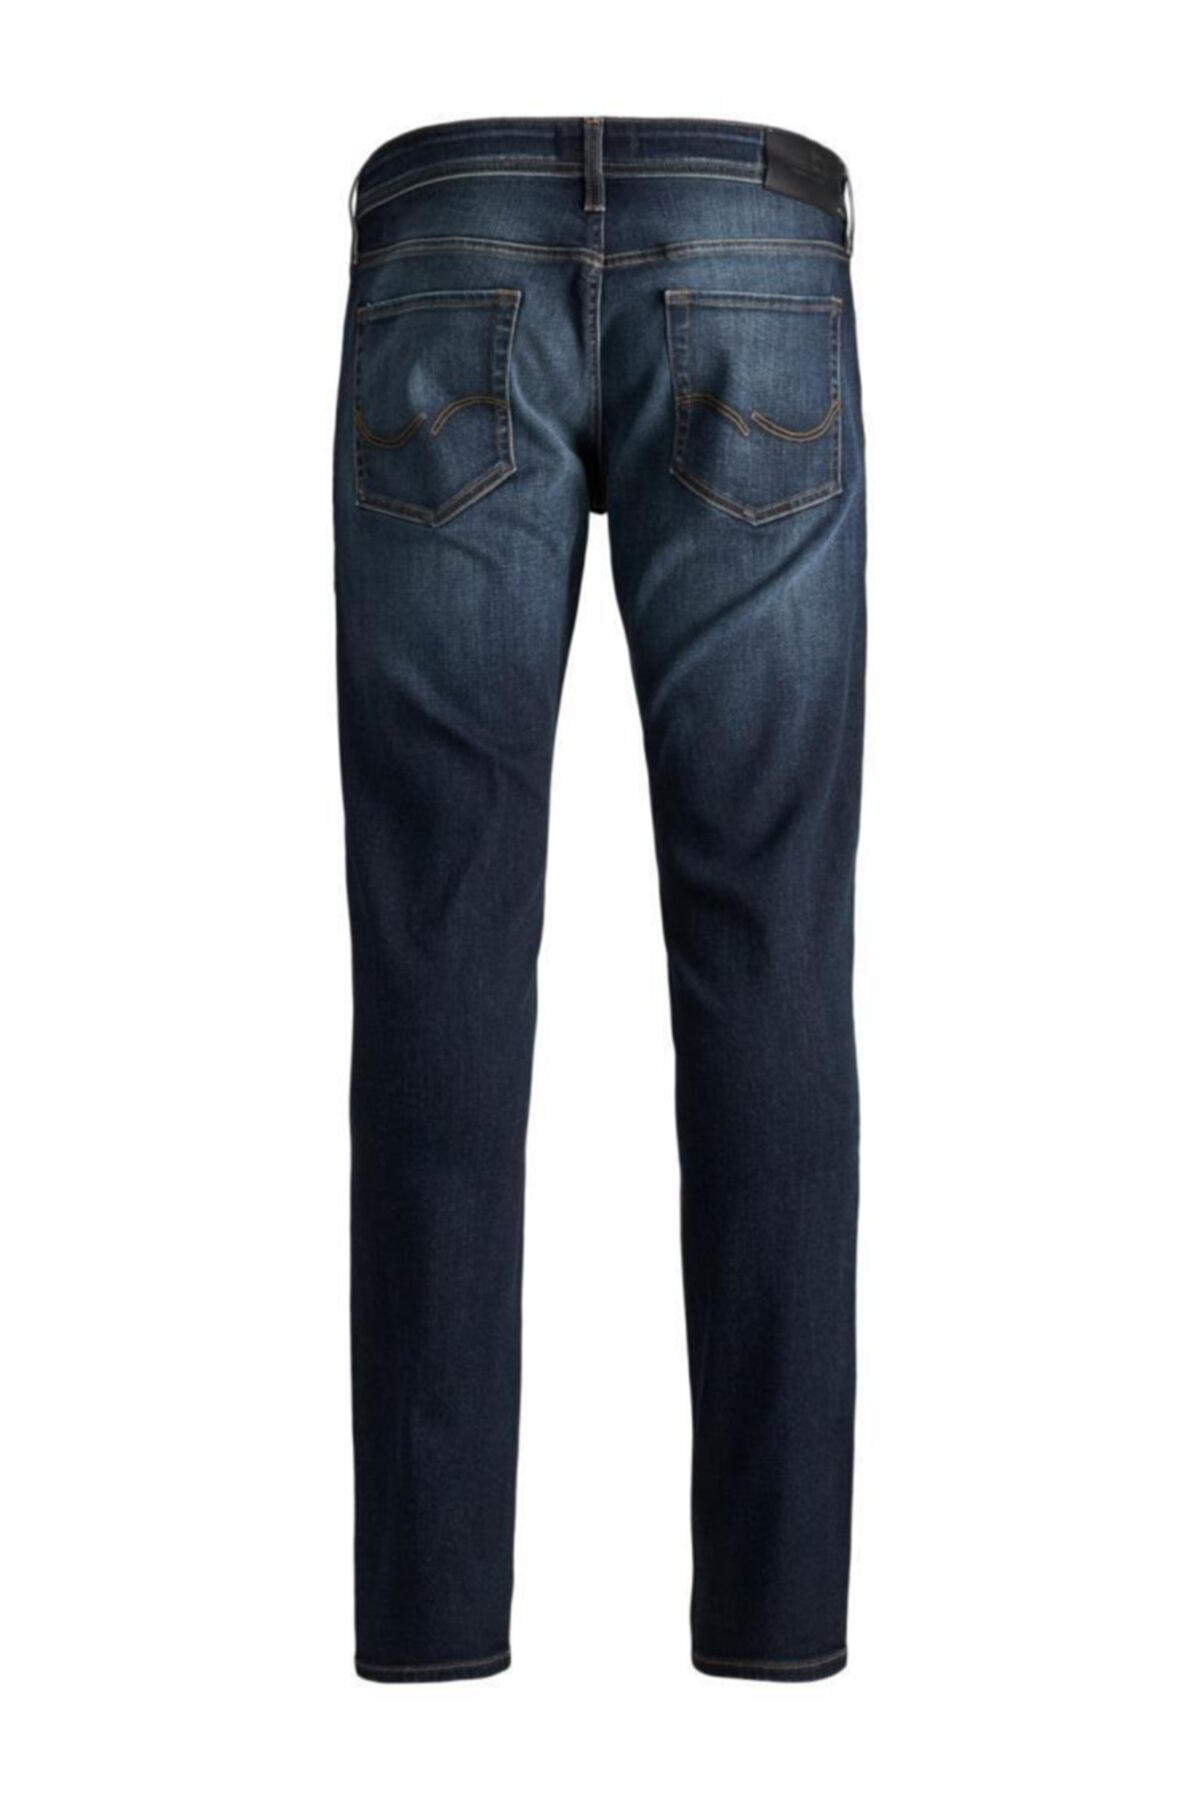 Jack & Jones Slim Jean - Glenn Orıgınal CJ 161 12164959 2